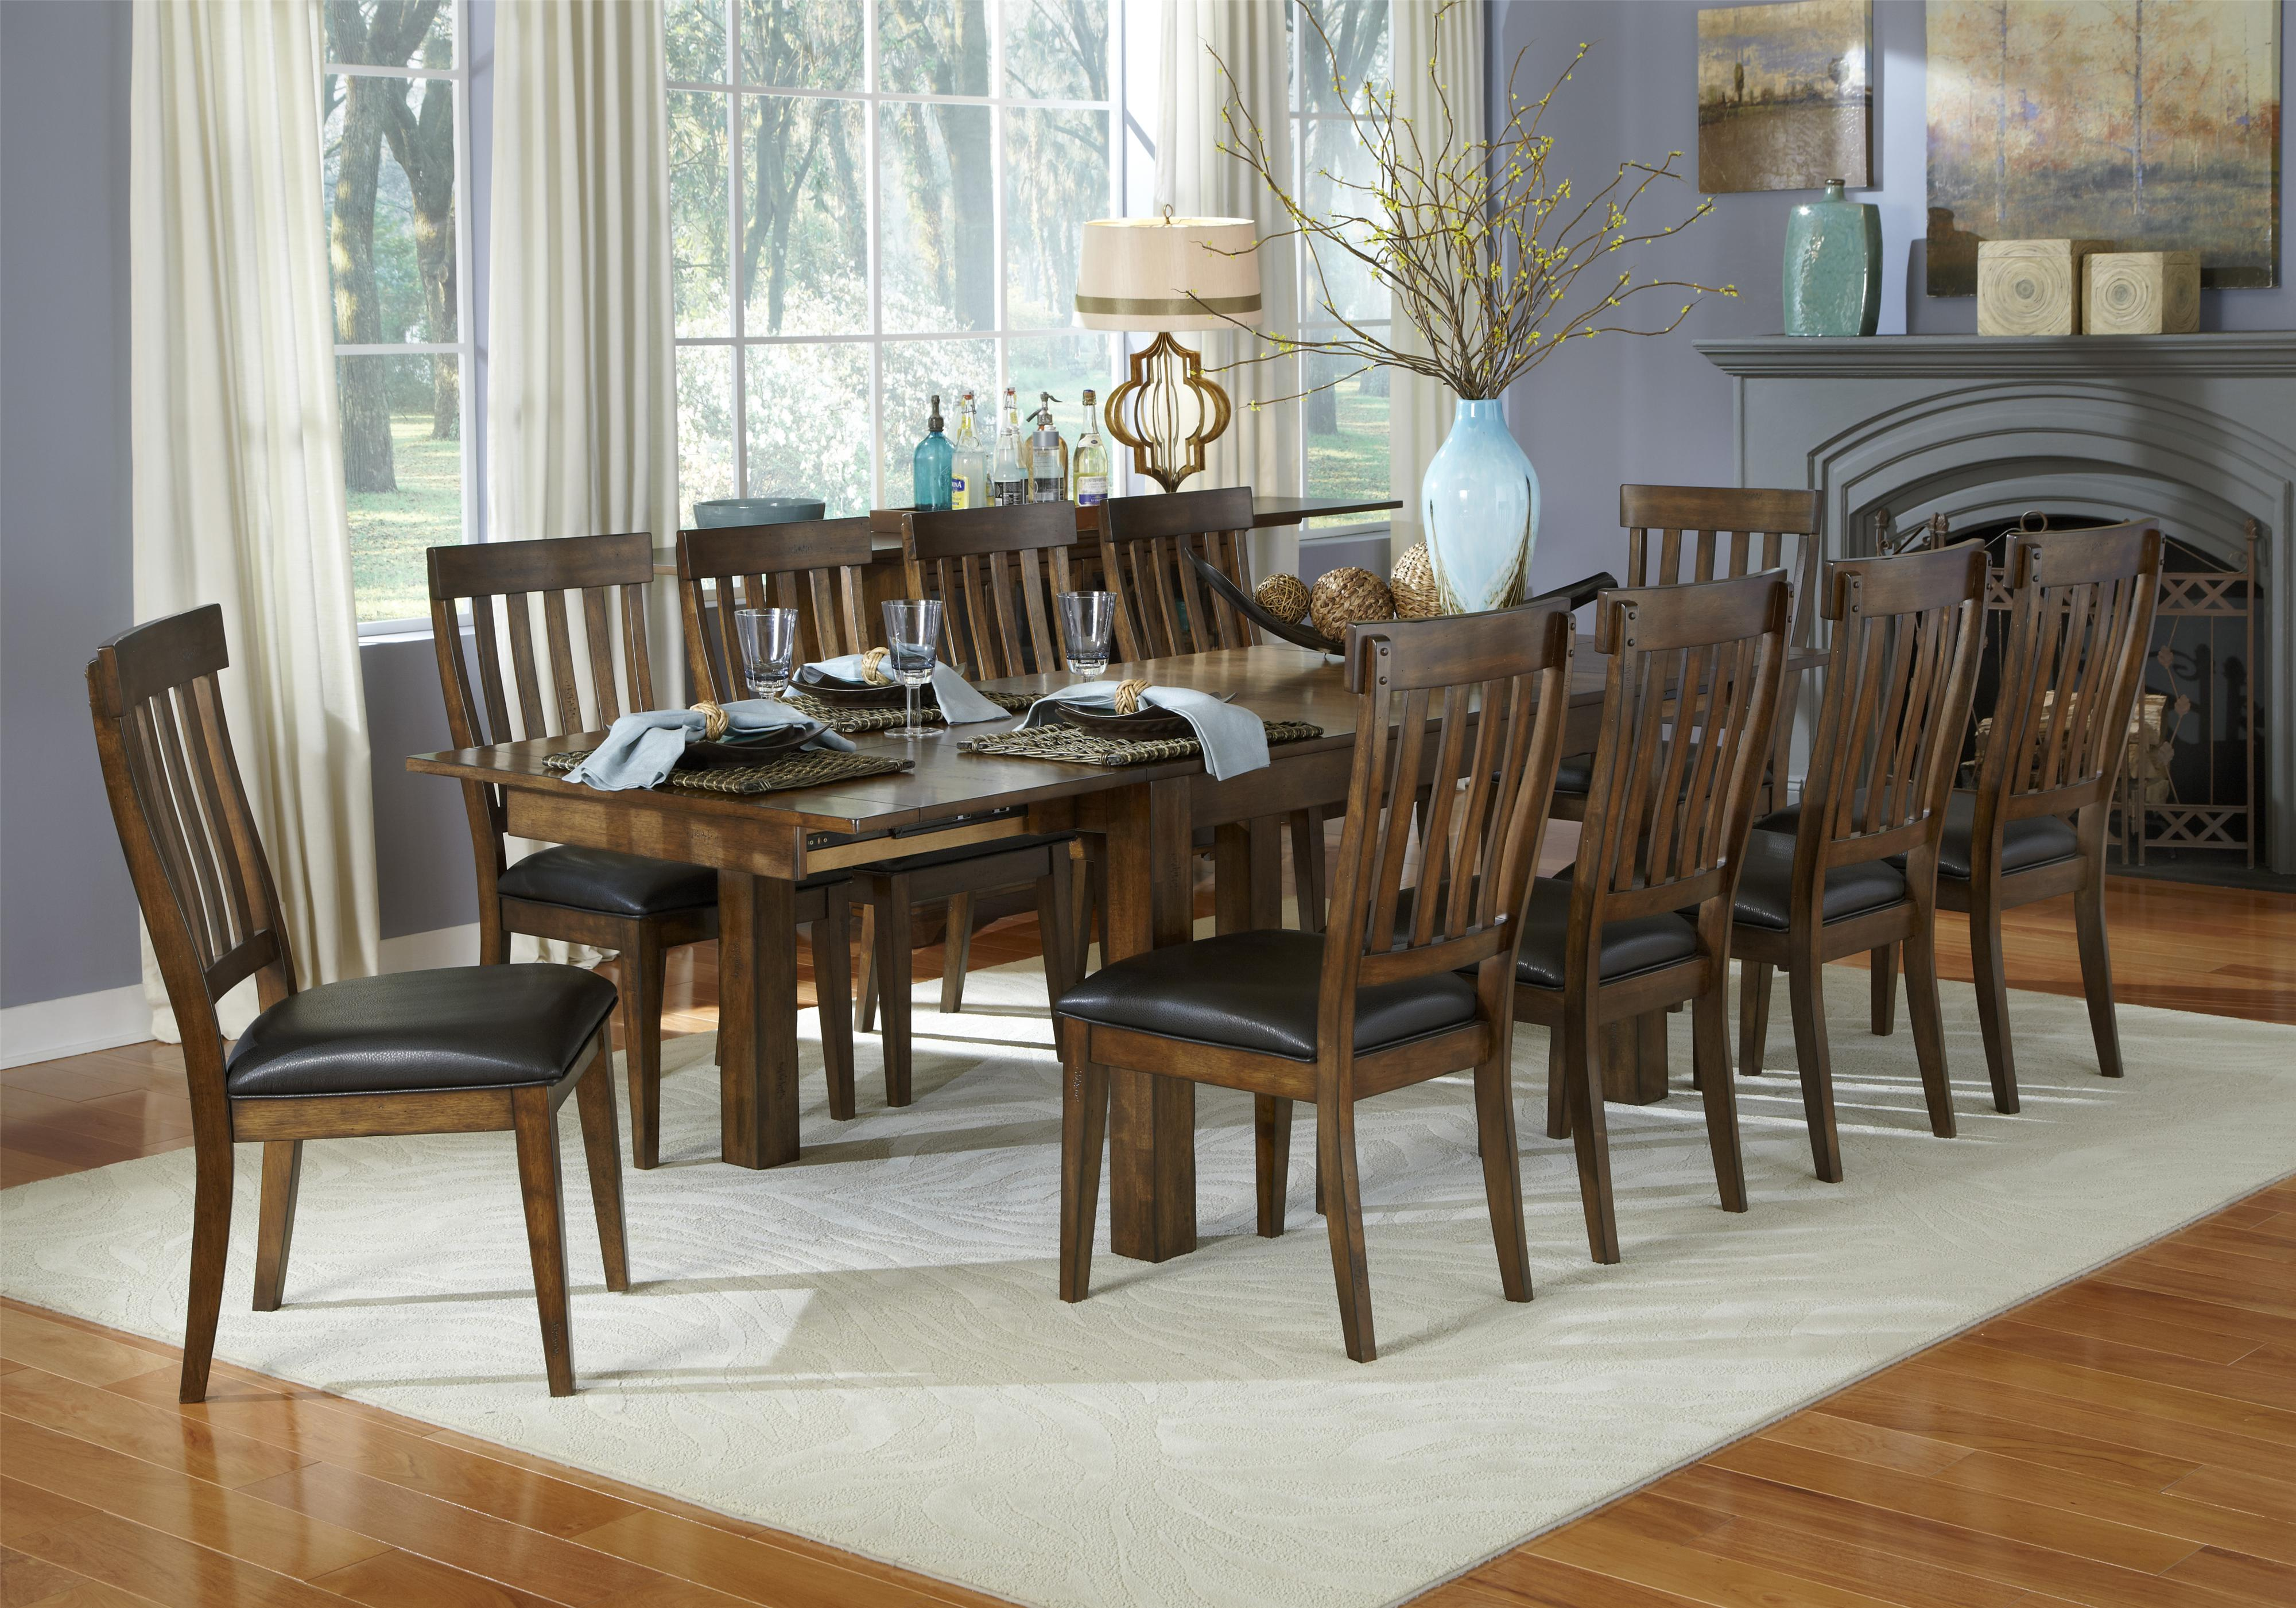 Attractive 11 Piece Dining Table And Slatback Chairs Set